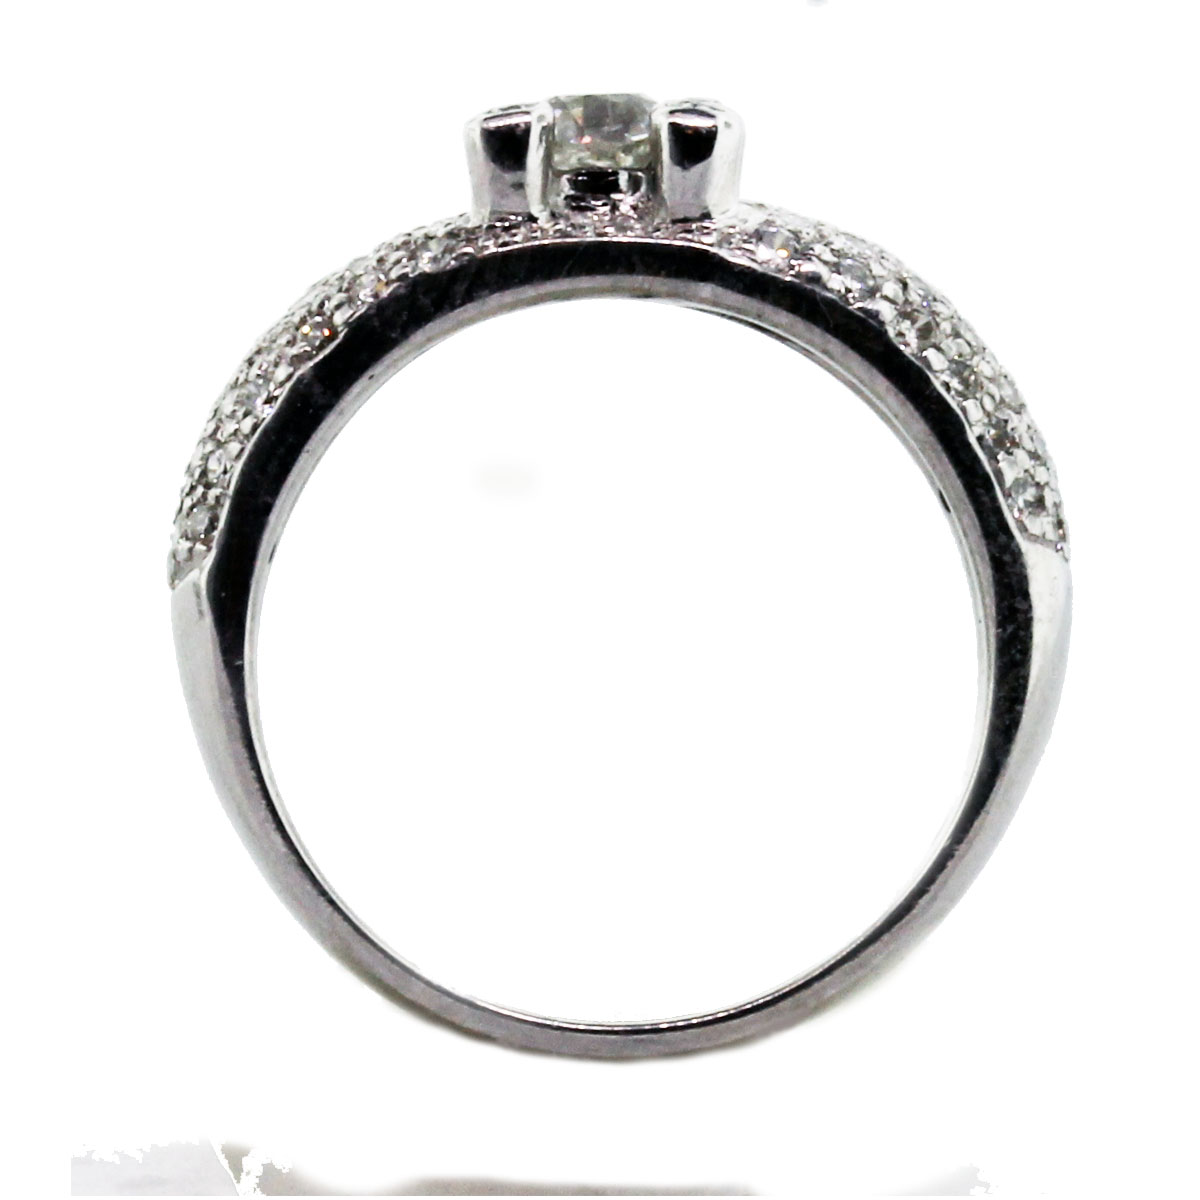 Half Carat Diamond Engagement Ring In 18k Pave Diamond. 3d Printed Rings. Ursula Rings. 4 Inch Rings. Love Cartier Rings. Oklahoma Rings. Pointed Wedding Rings. Sophisticated Wedding Wedding Rings. Exchange Engagement Rings